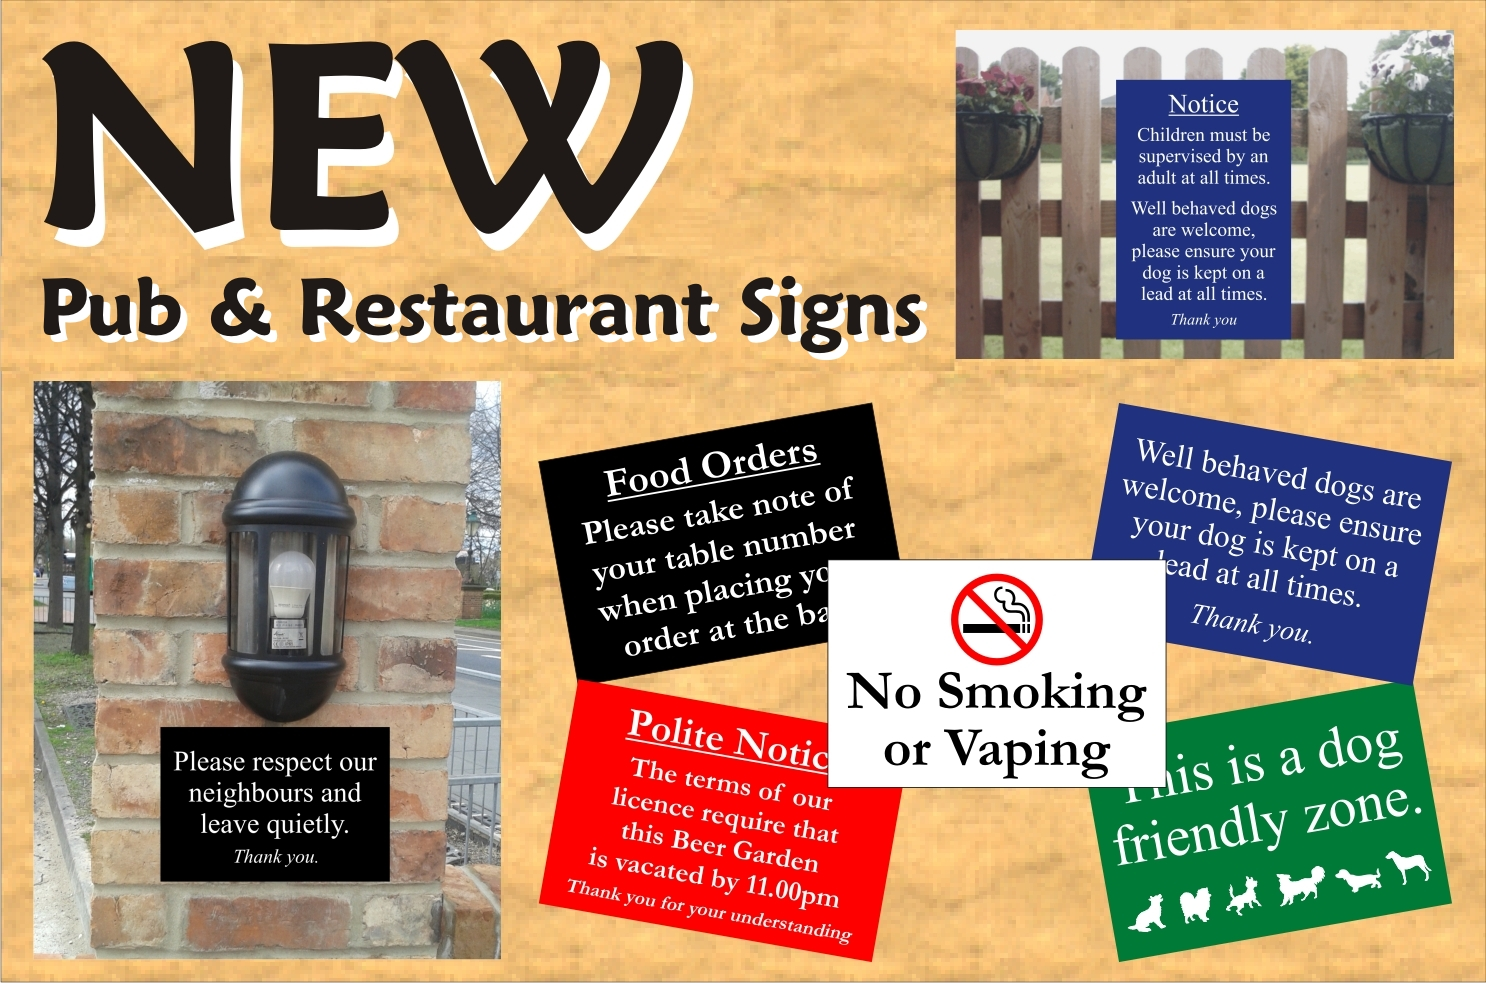 Pub & Restaurant Signs